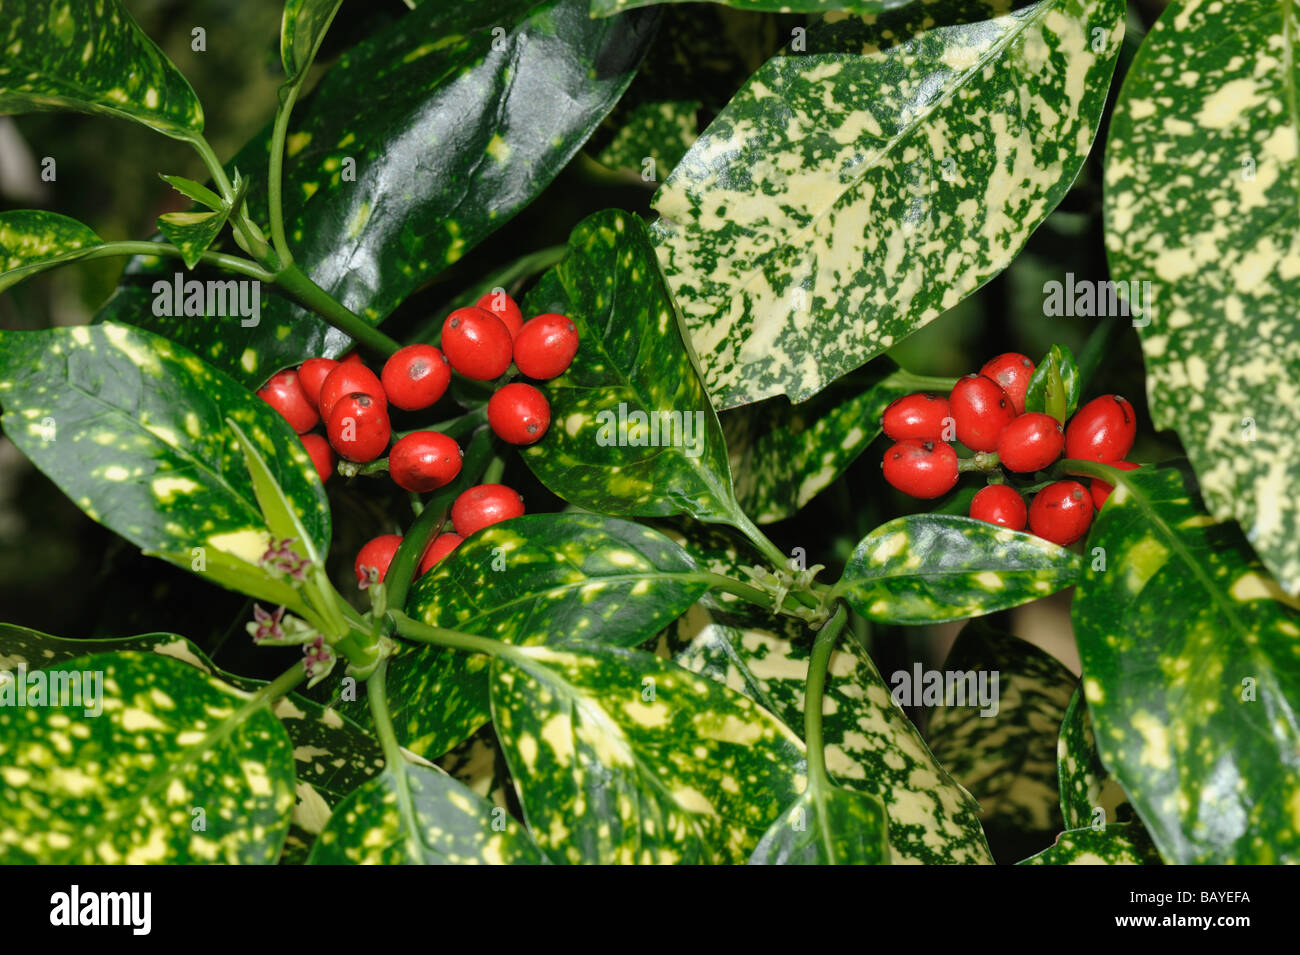 Spotted laurel Aucuba japonica variegated foliage and ripe red berries - Stock Image